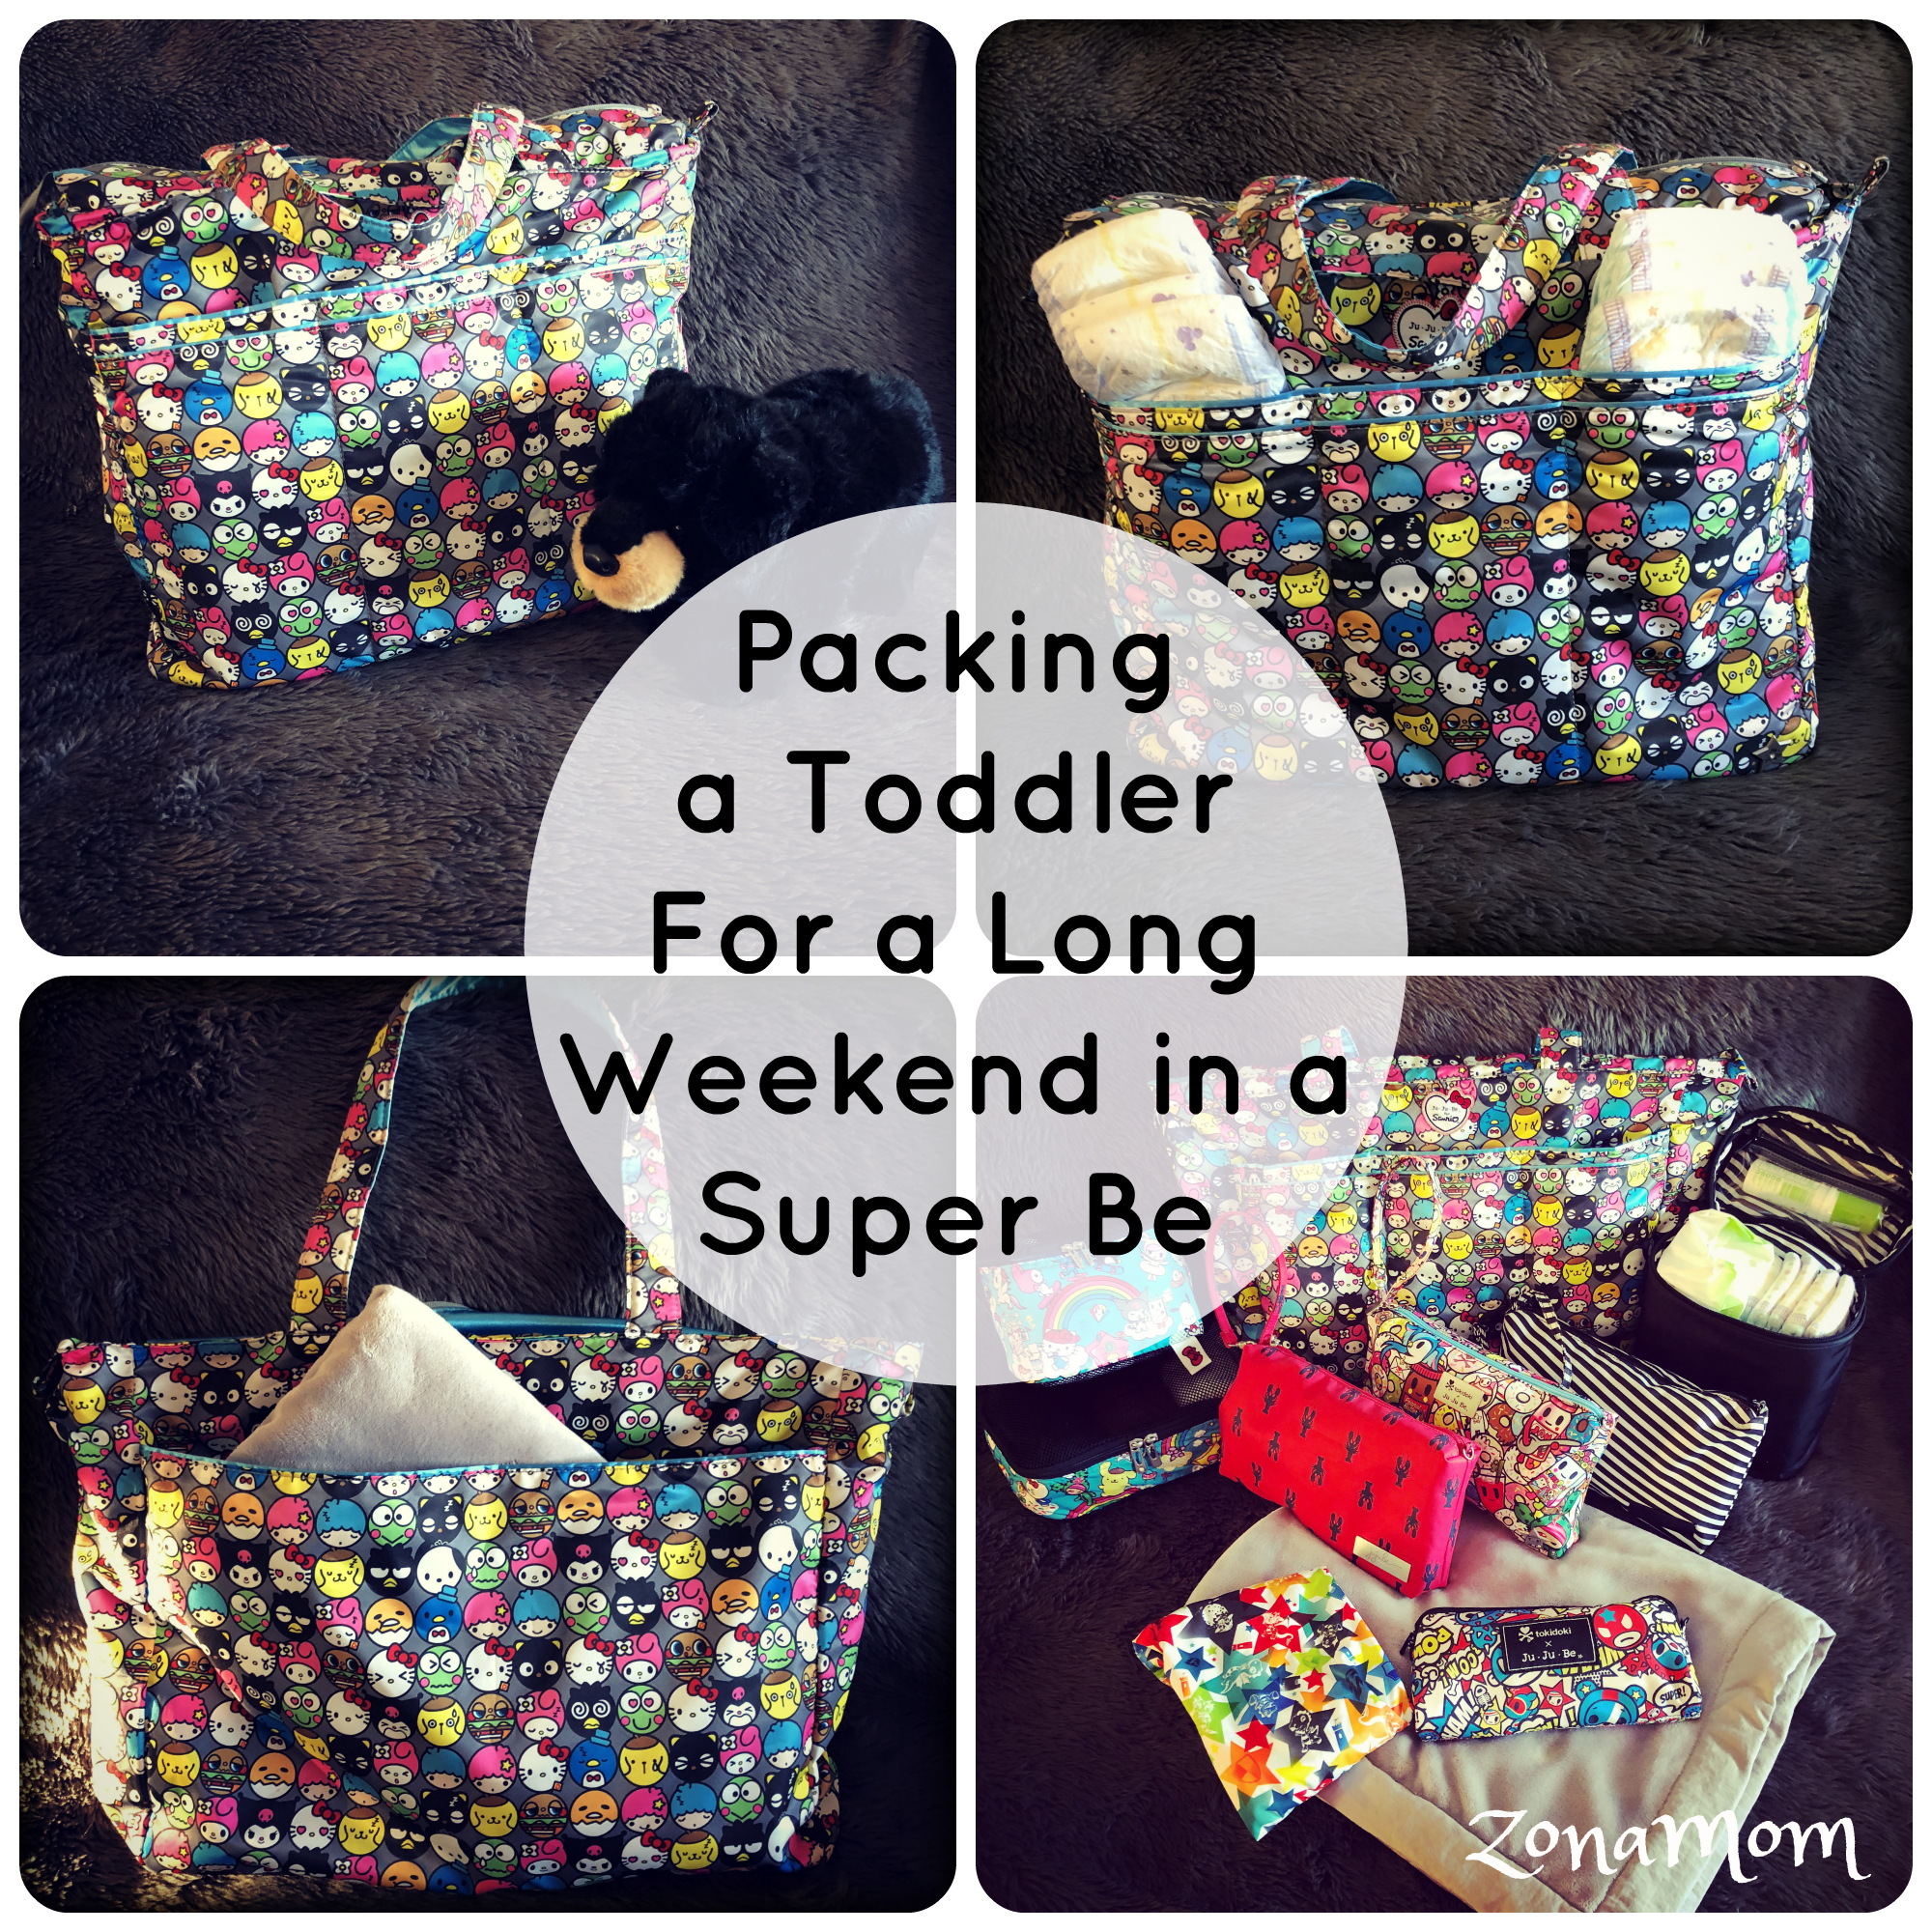 Packing a Toddler for a long weekend in a Ju Ju Be Super Be (Hello Friends print)